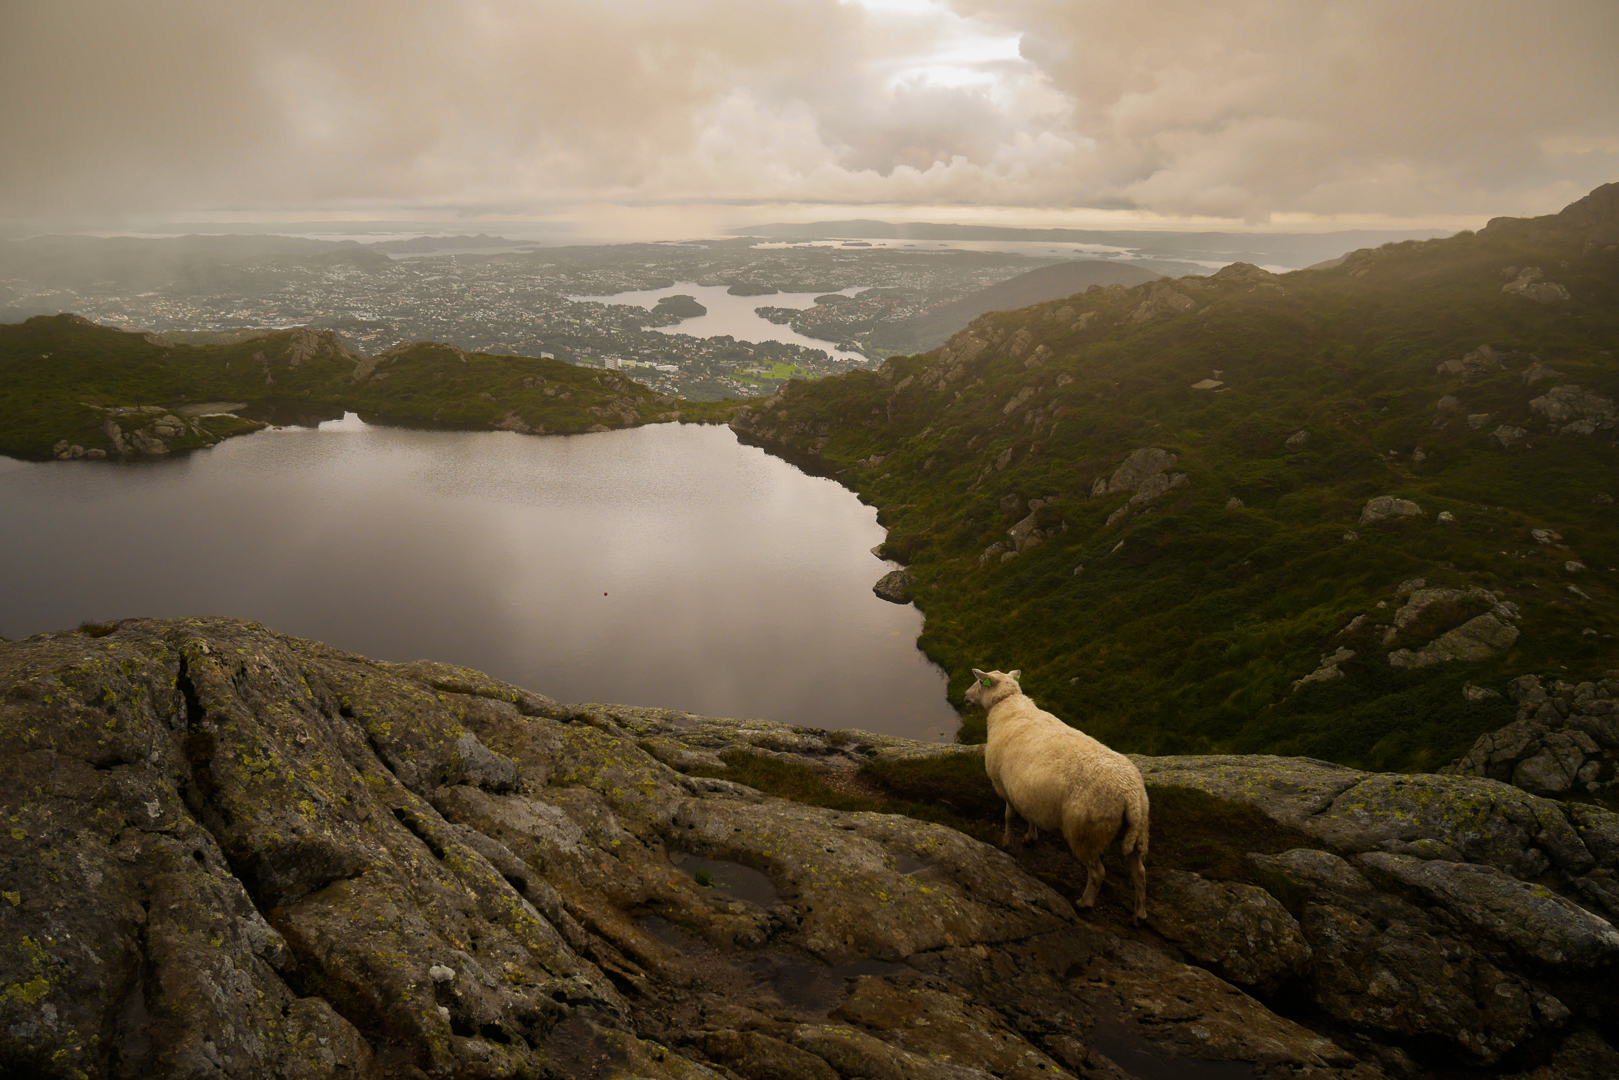 NORWAY, Bergen – A sheep is looking at the landscape. © Marko K